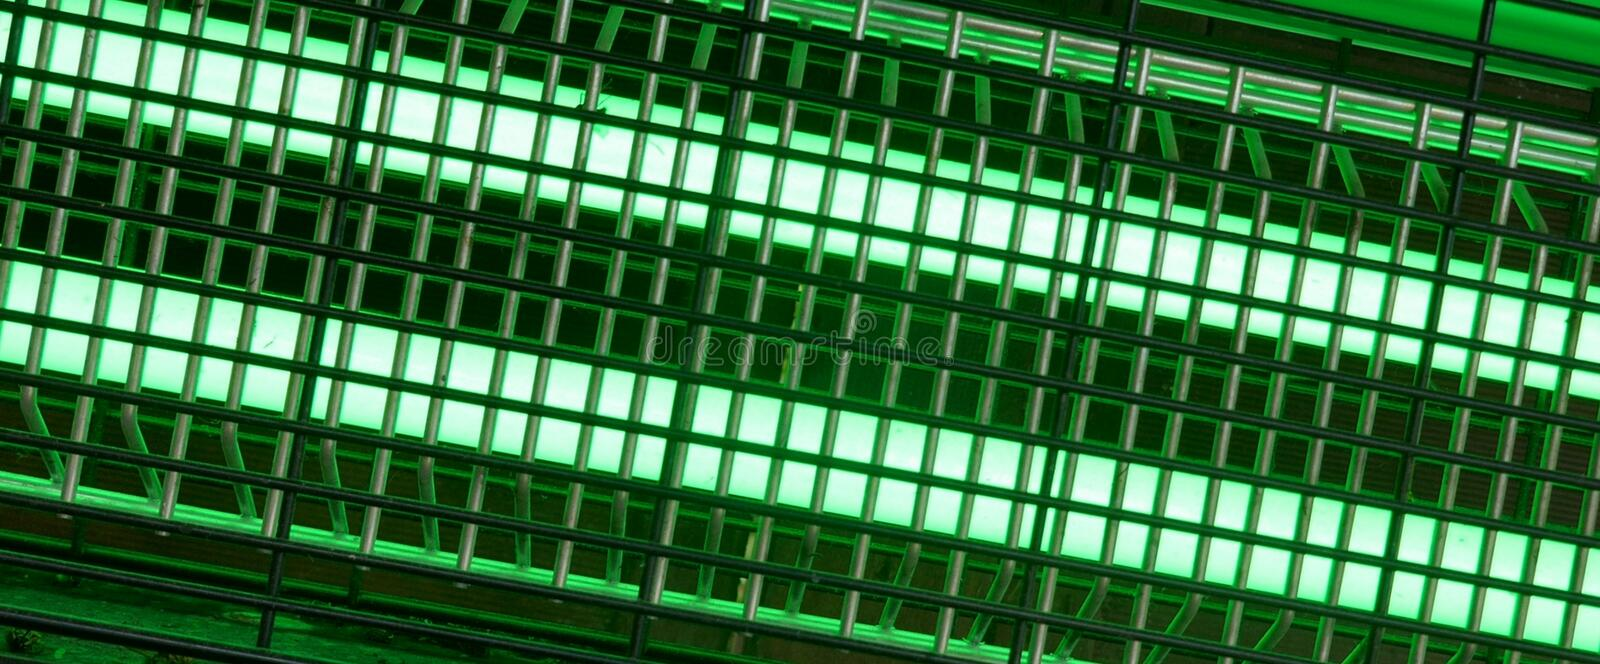 Bright green glowing UV lamp. Electric insect trap stock image